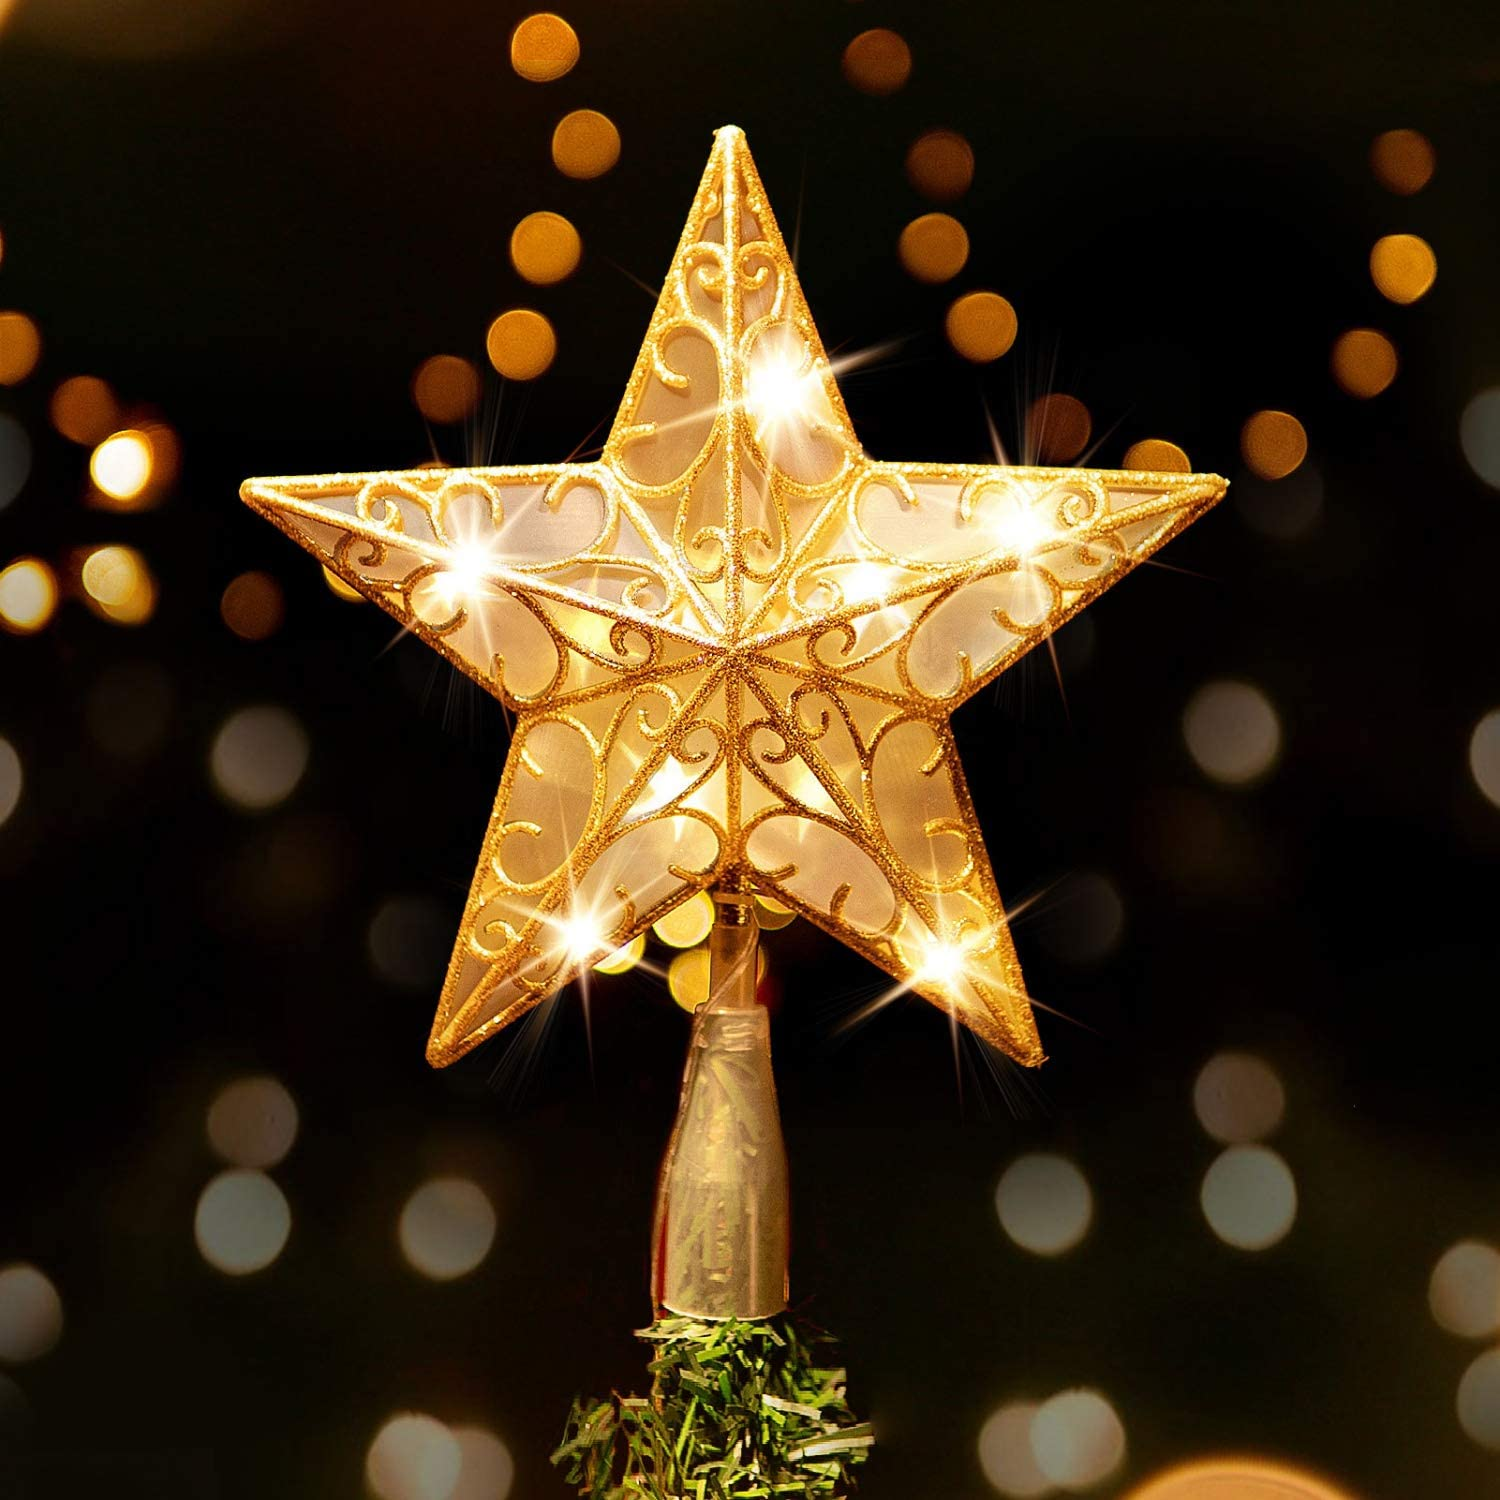 Amazon Com Rocinha Gold Christmas Tree Topper Star Lighted Tree Star Glitter Christmas Star Tree Topper With Warm White Led Lights 9 Inch Star For Christmas Tree Kitchen Dining